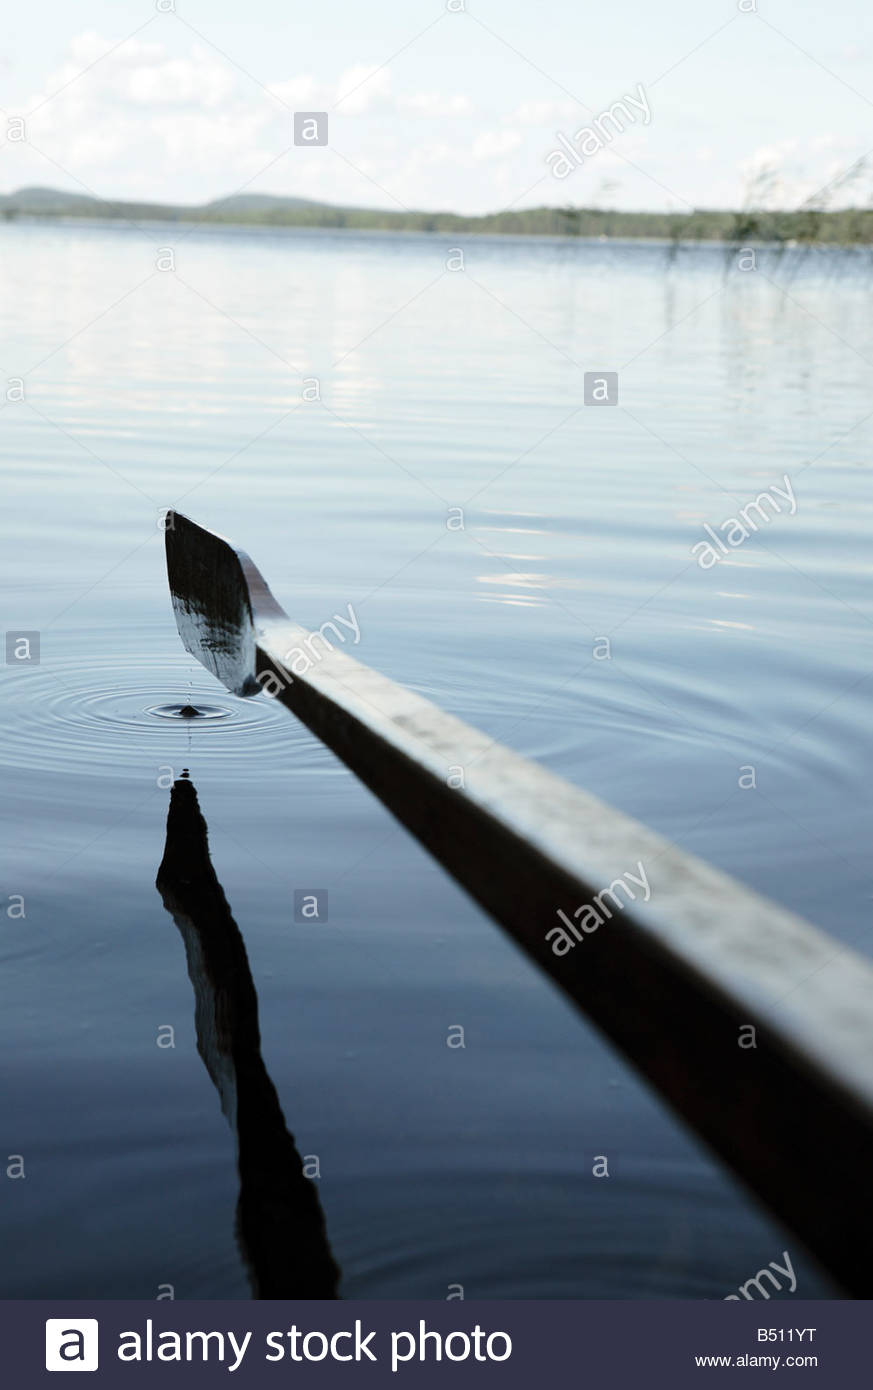 Oar of a row boat in a lake Finland - Stock Image